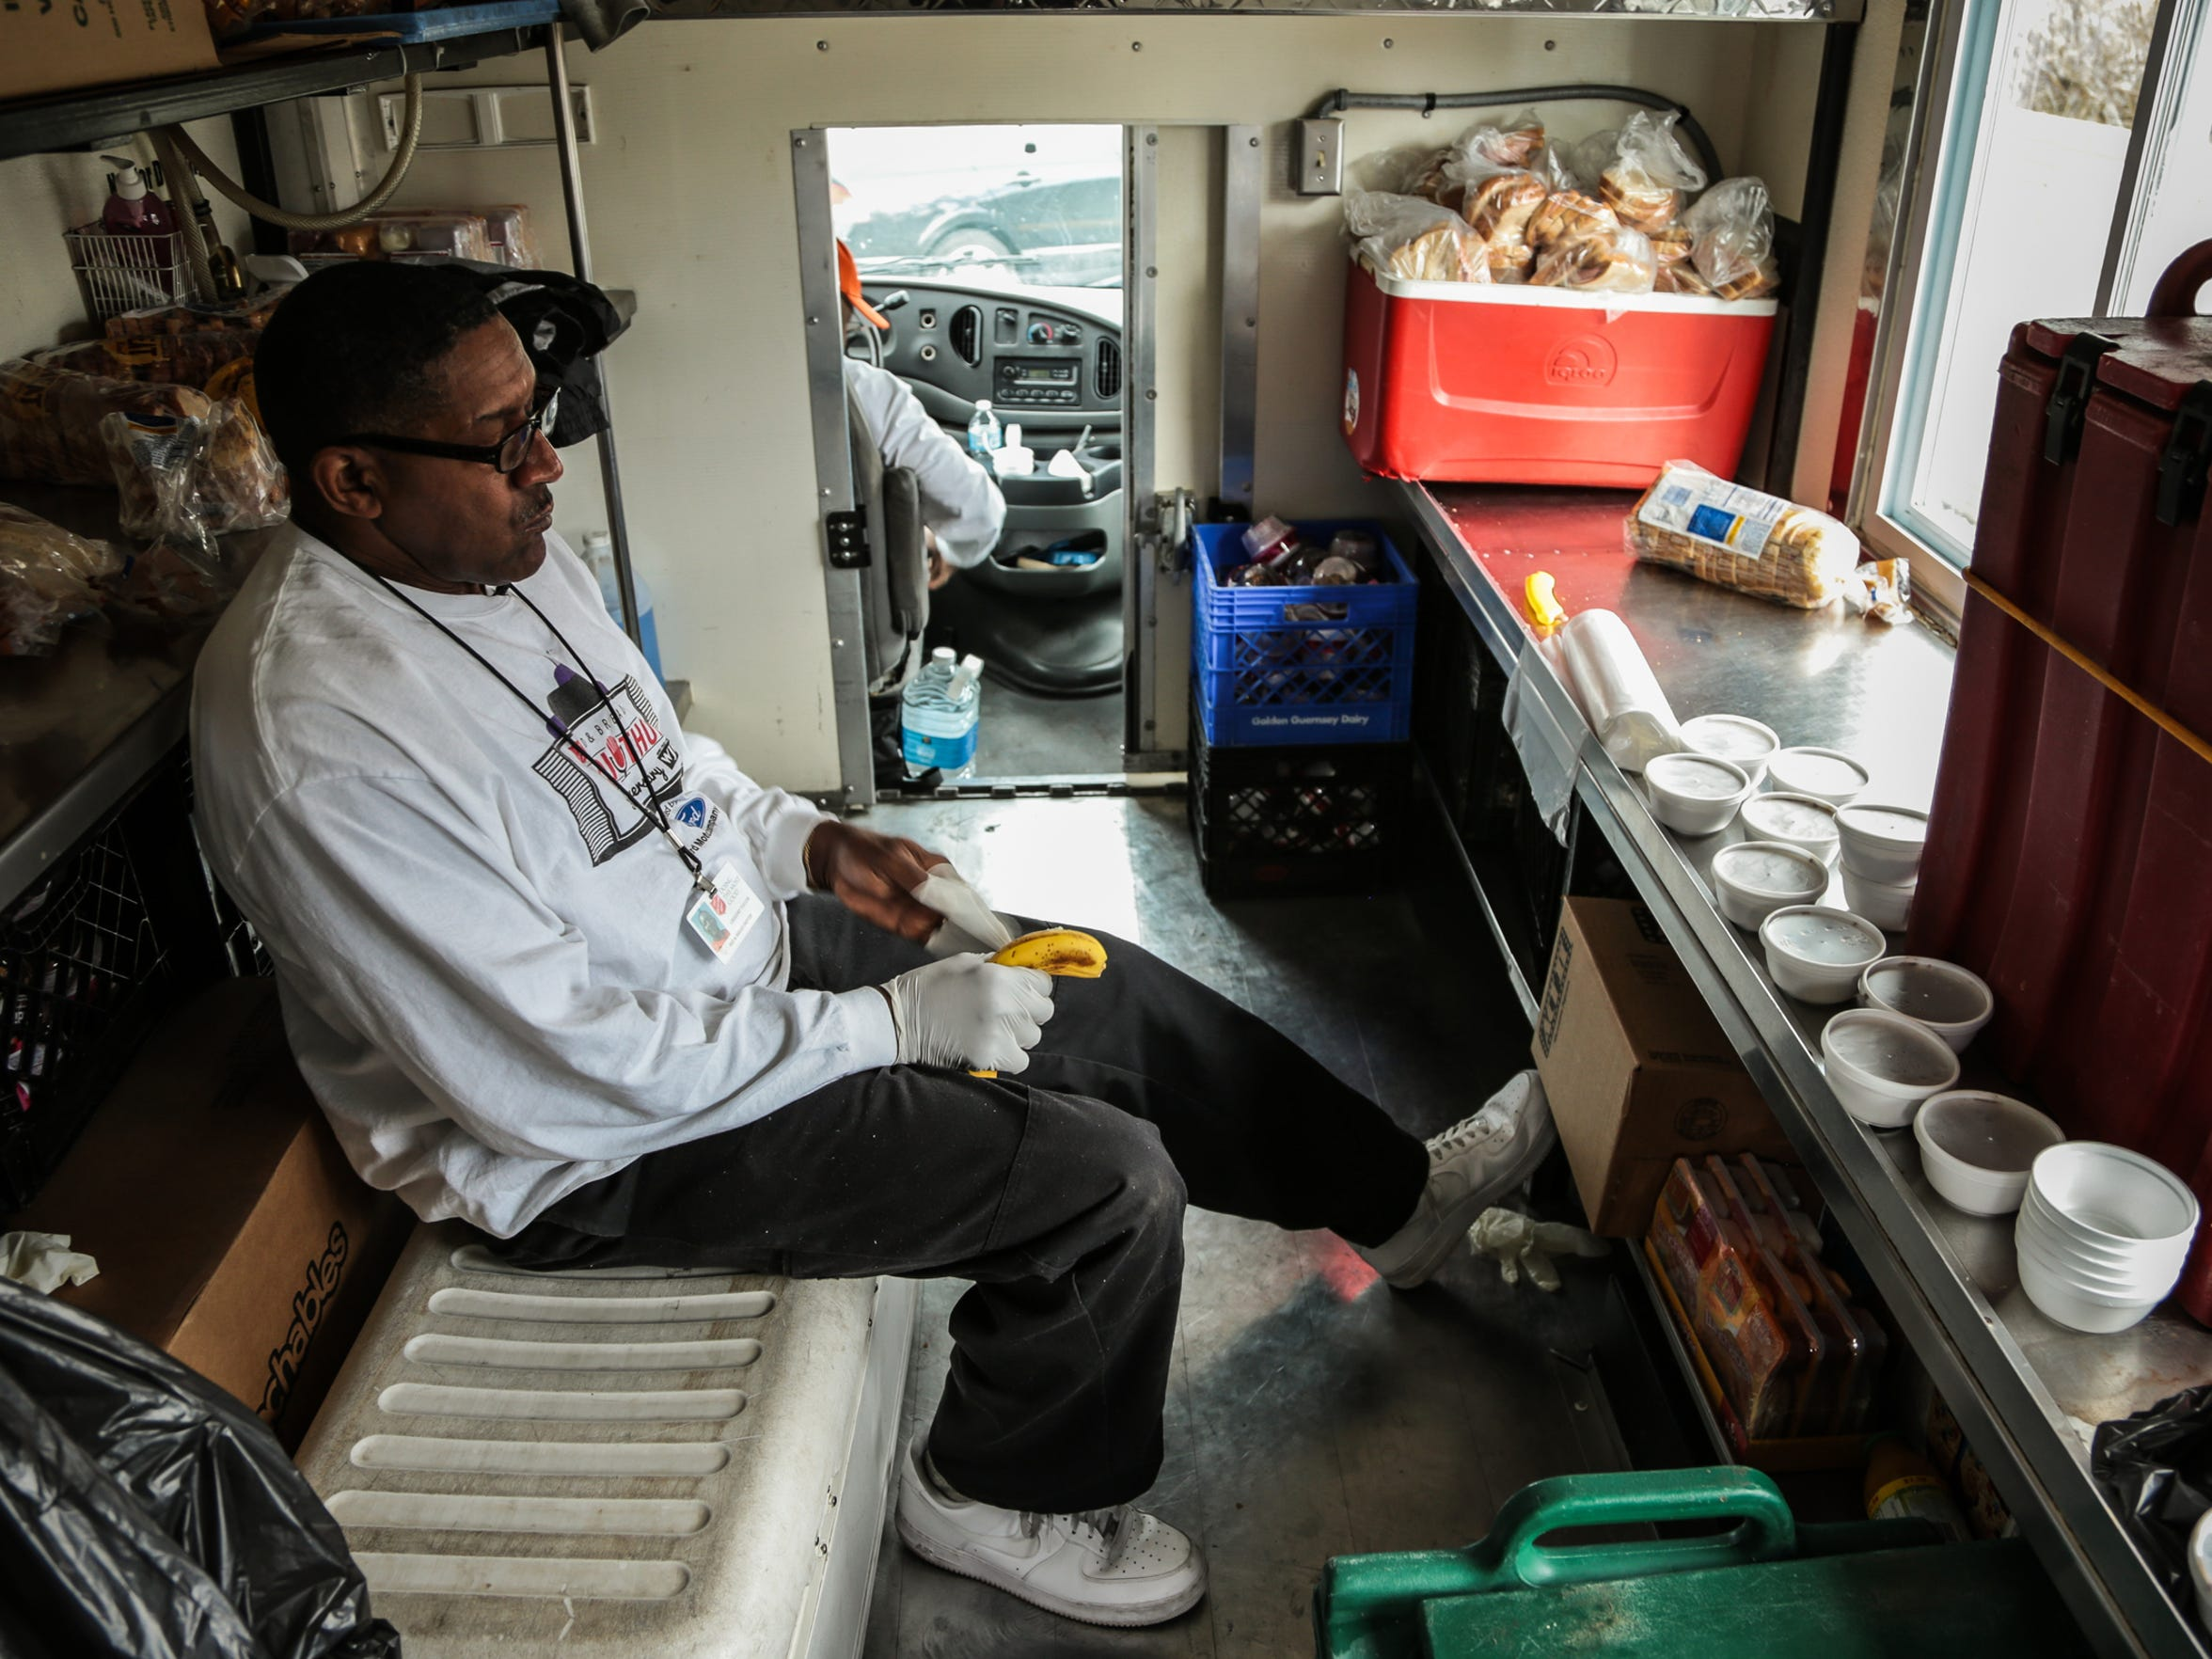 Gregory Taylor, 62, of Detroit, rests for a moment after preparing sandwiches and soups on the Salvation Army's Bed and Bread program food truck before another stop.